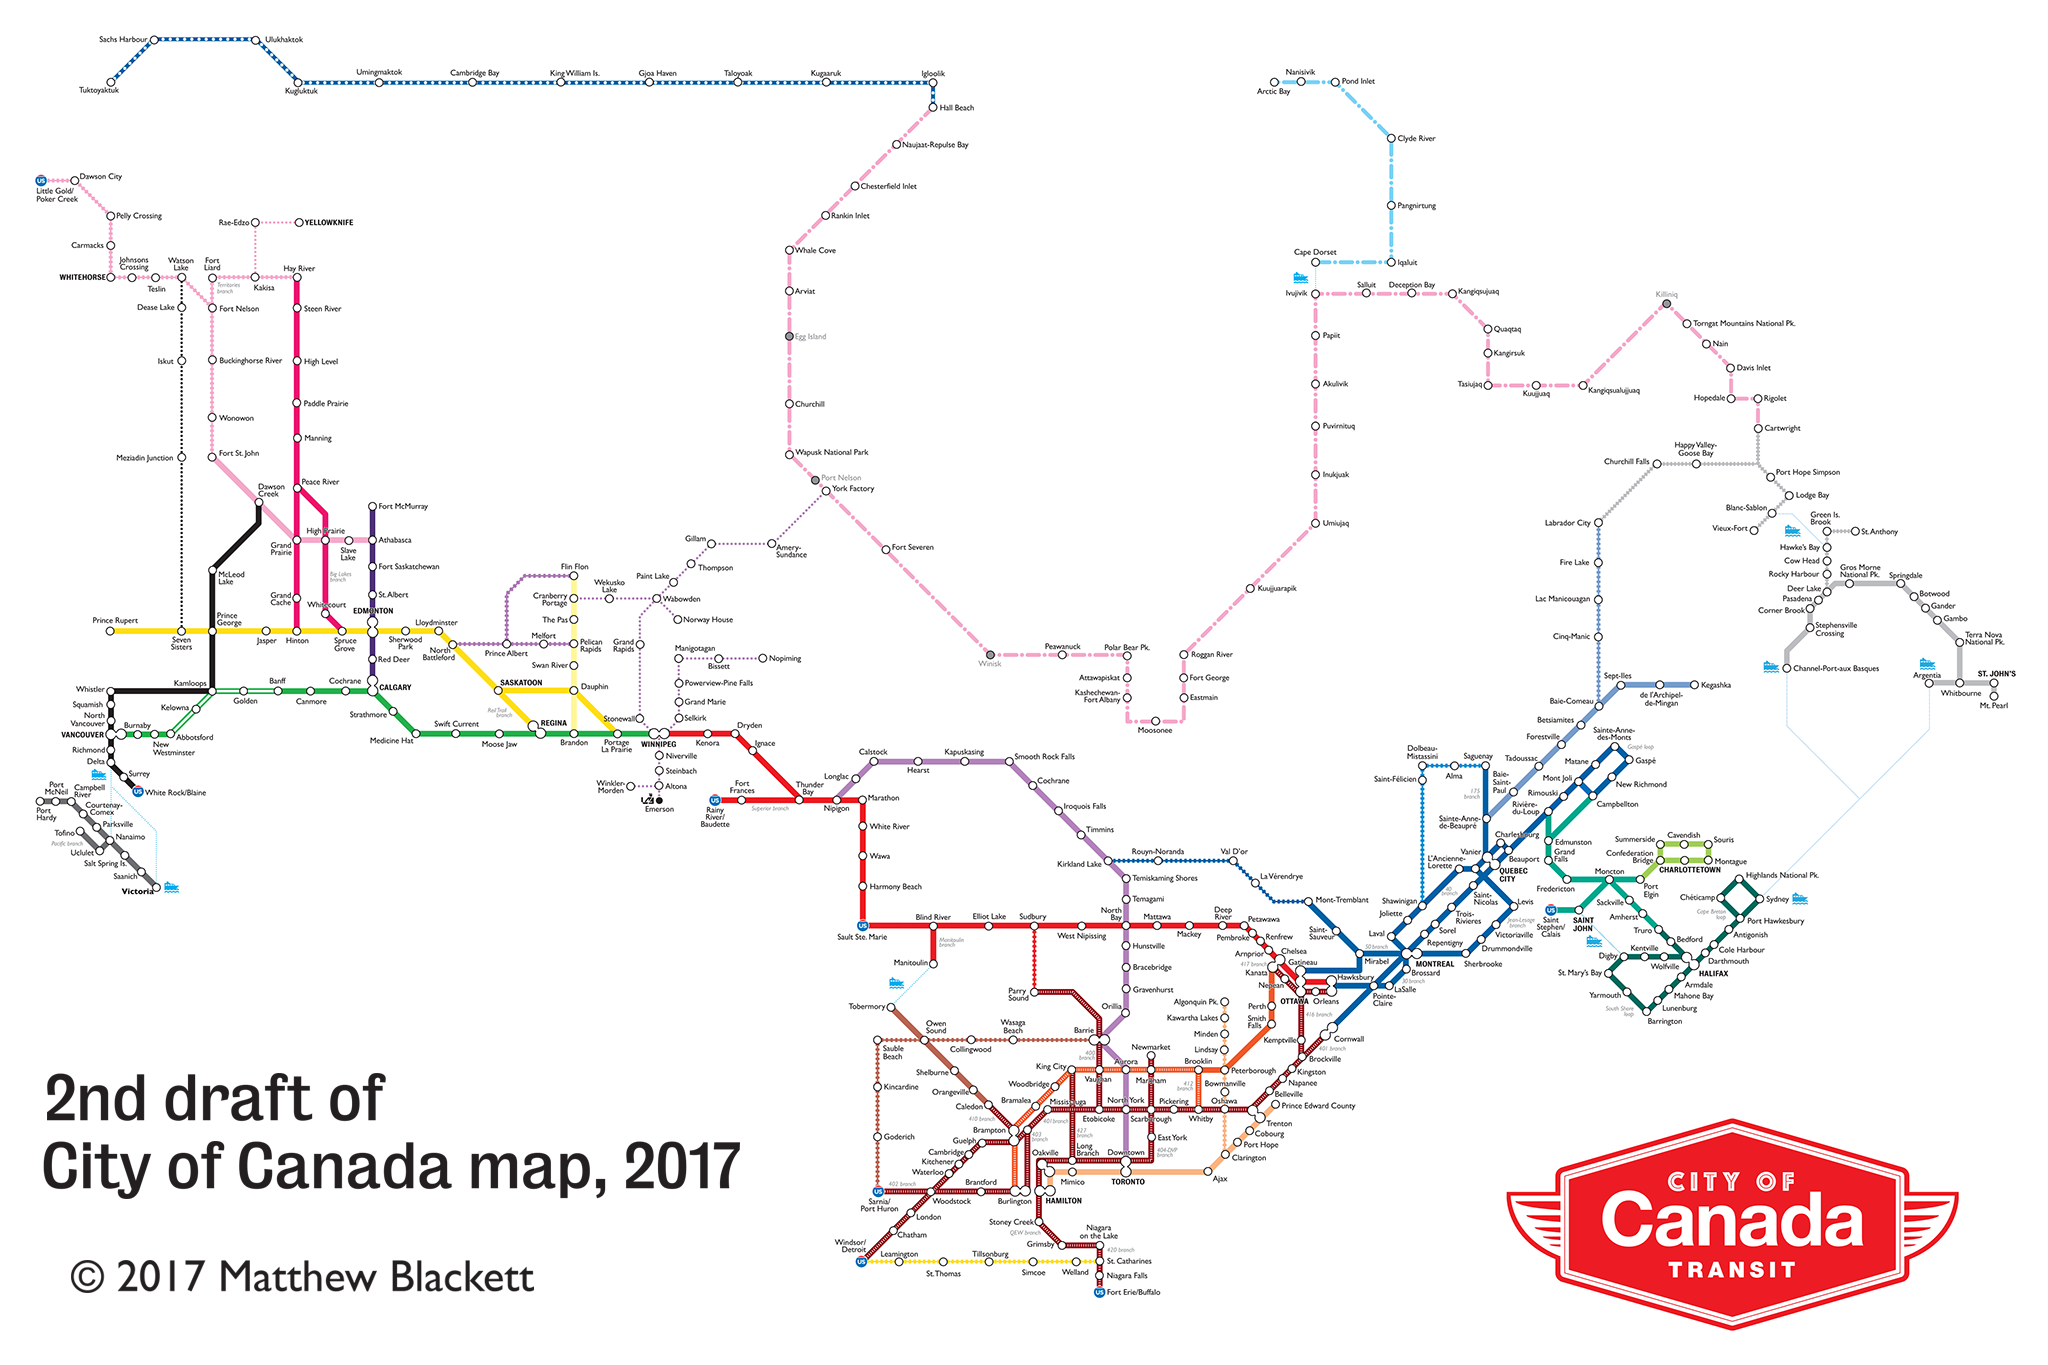 Map Of Canada With City Names.A Closer Look At The City Of Canada Transit Map Spacing National